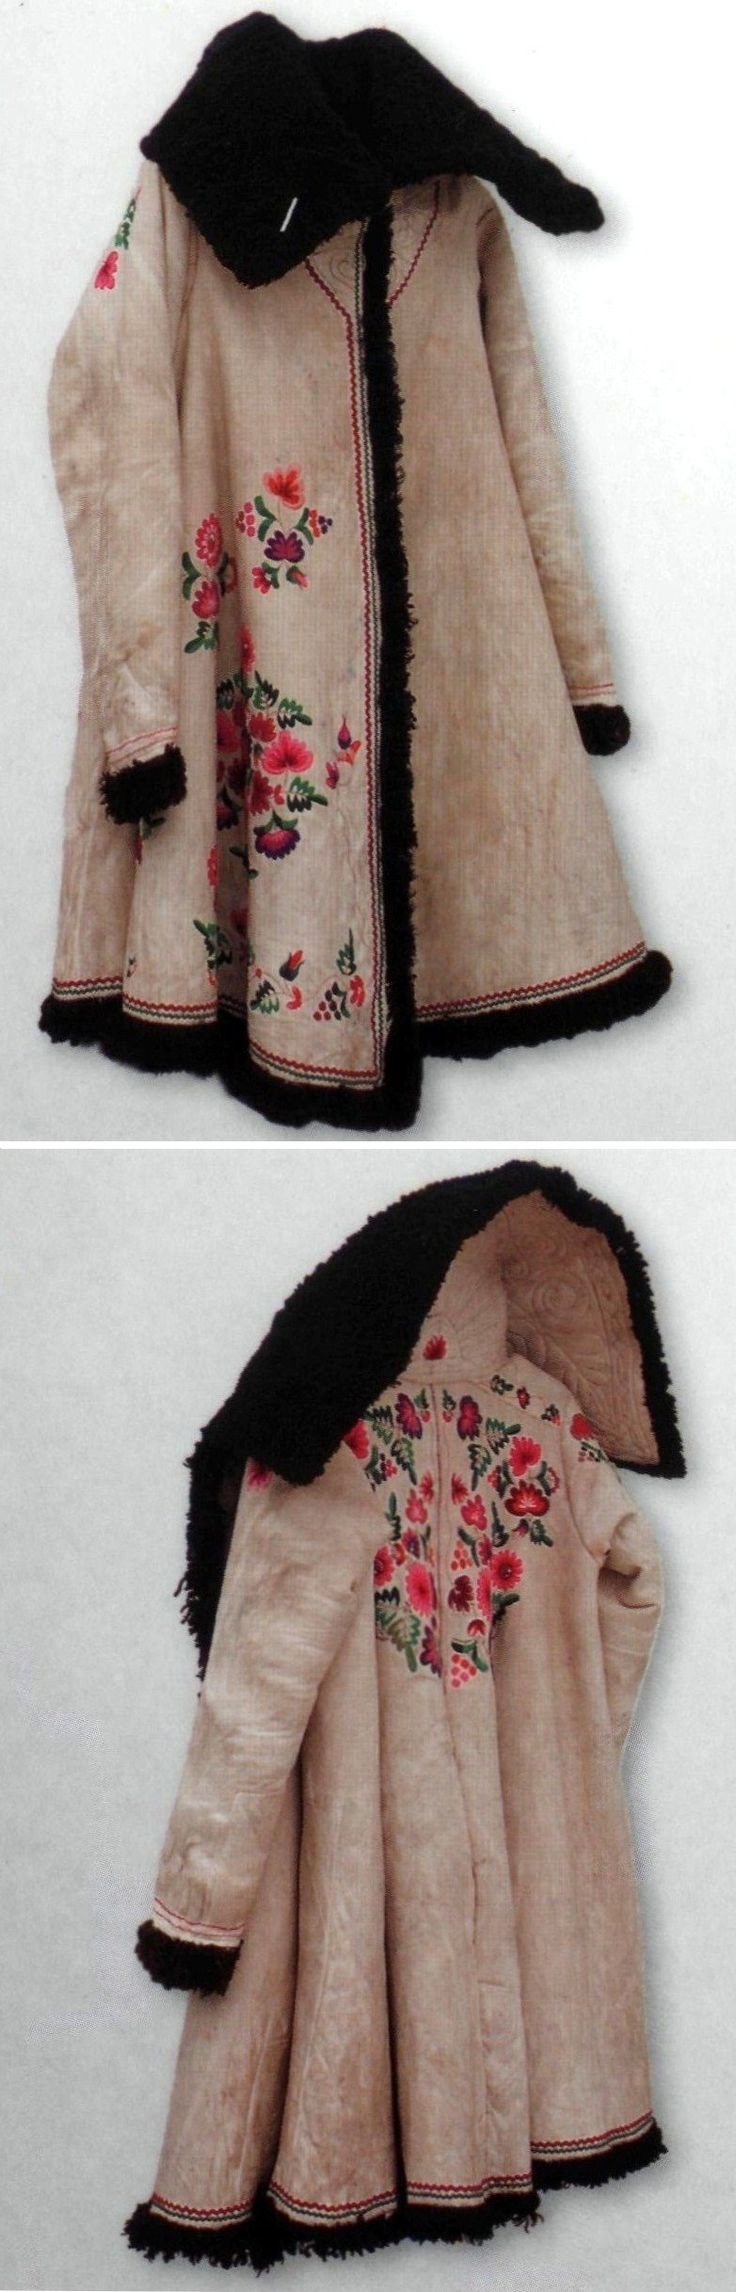 Winter coat of a Russian peasant woman. Fur sheepskin; embroidery. 19th century